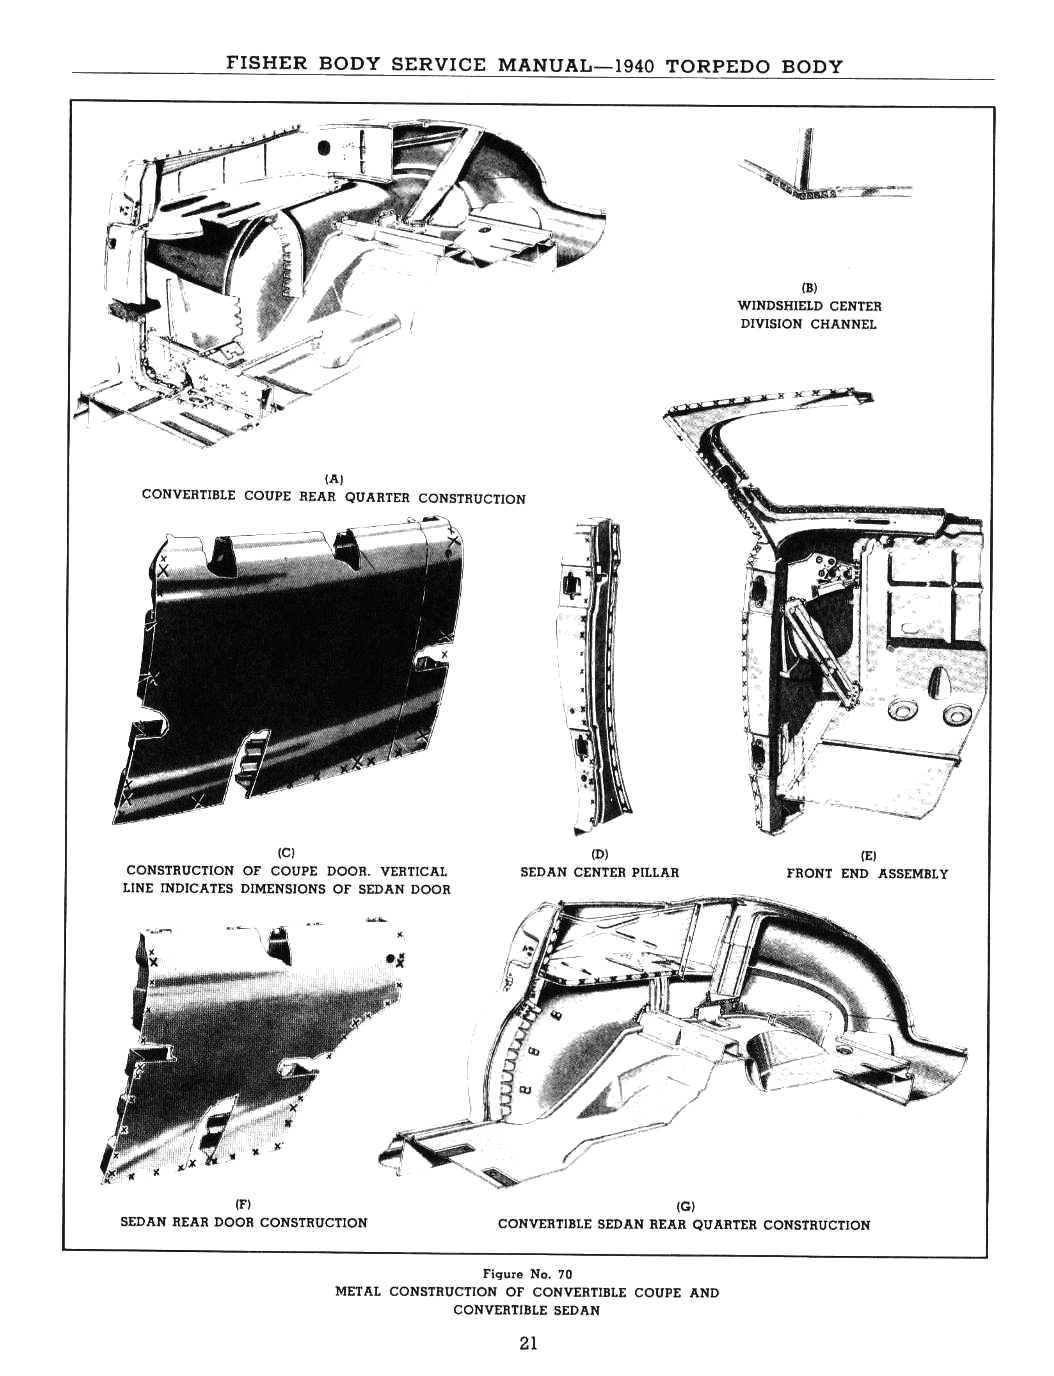 1939 & 1940 Fisher Body Service & Construction